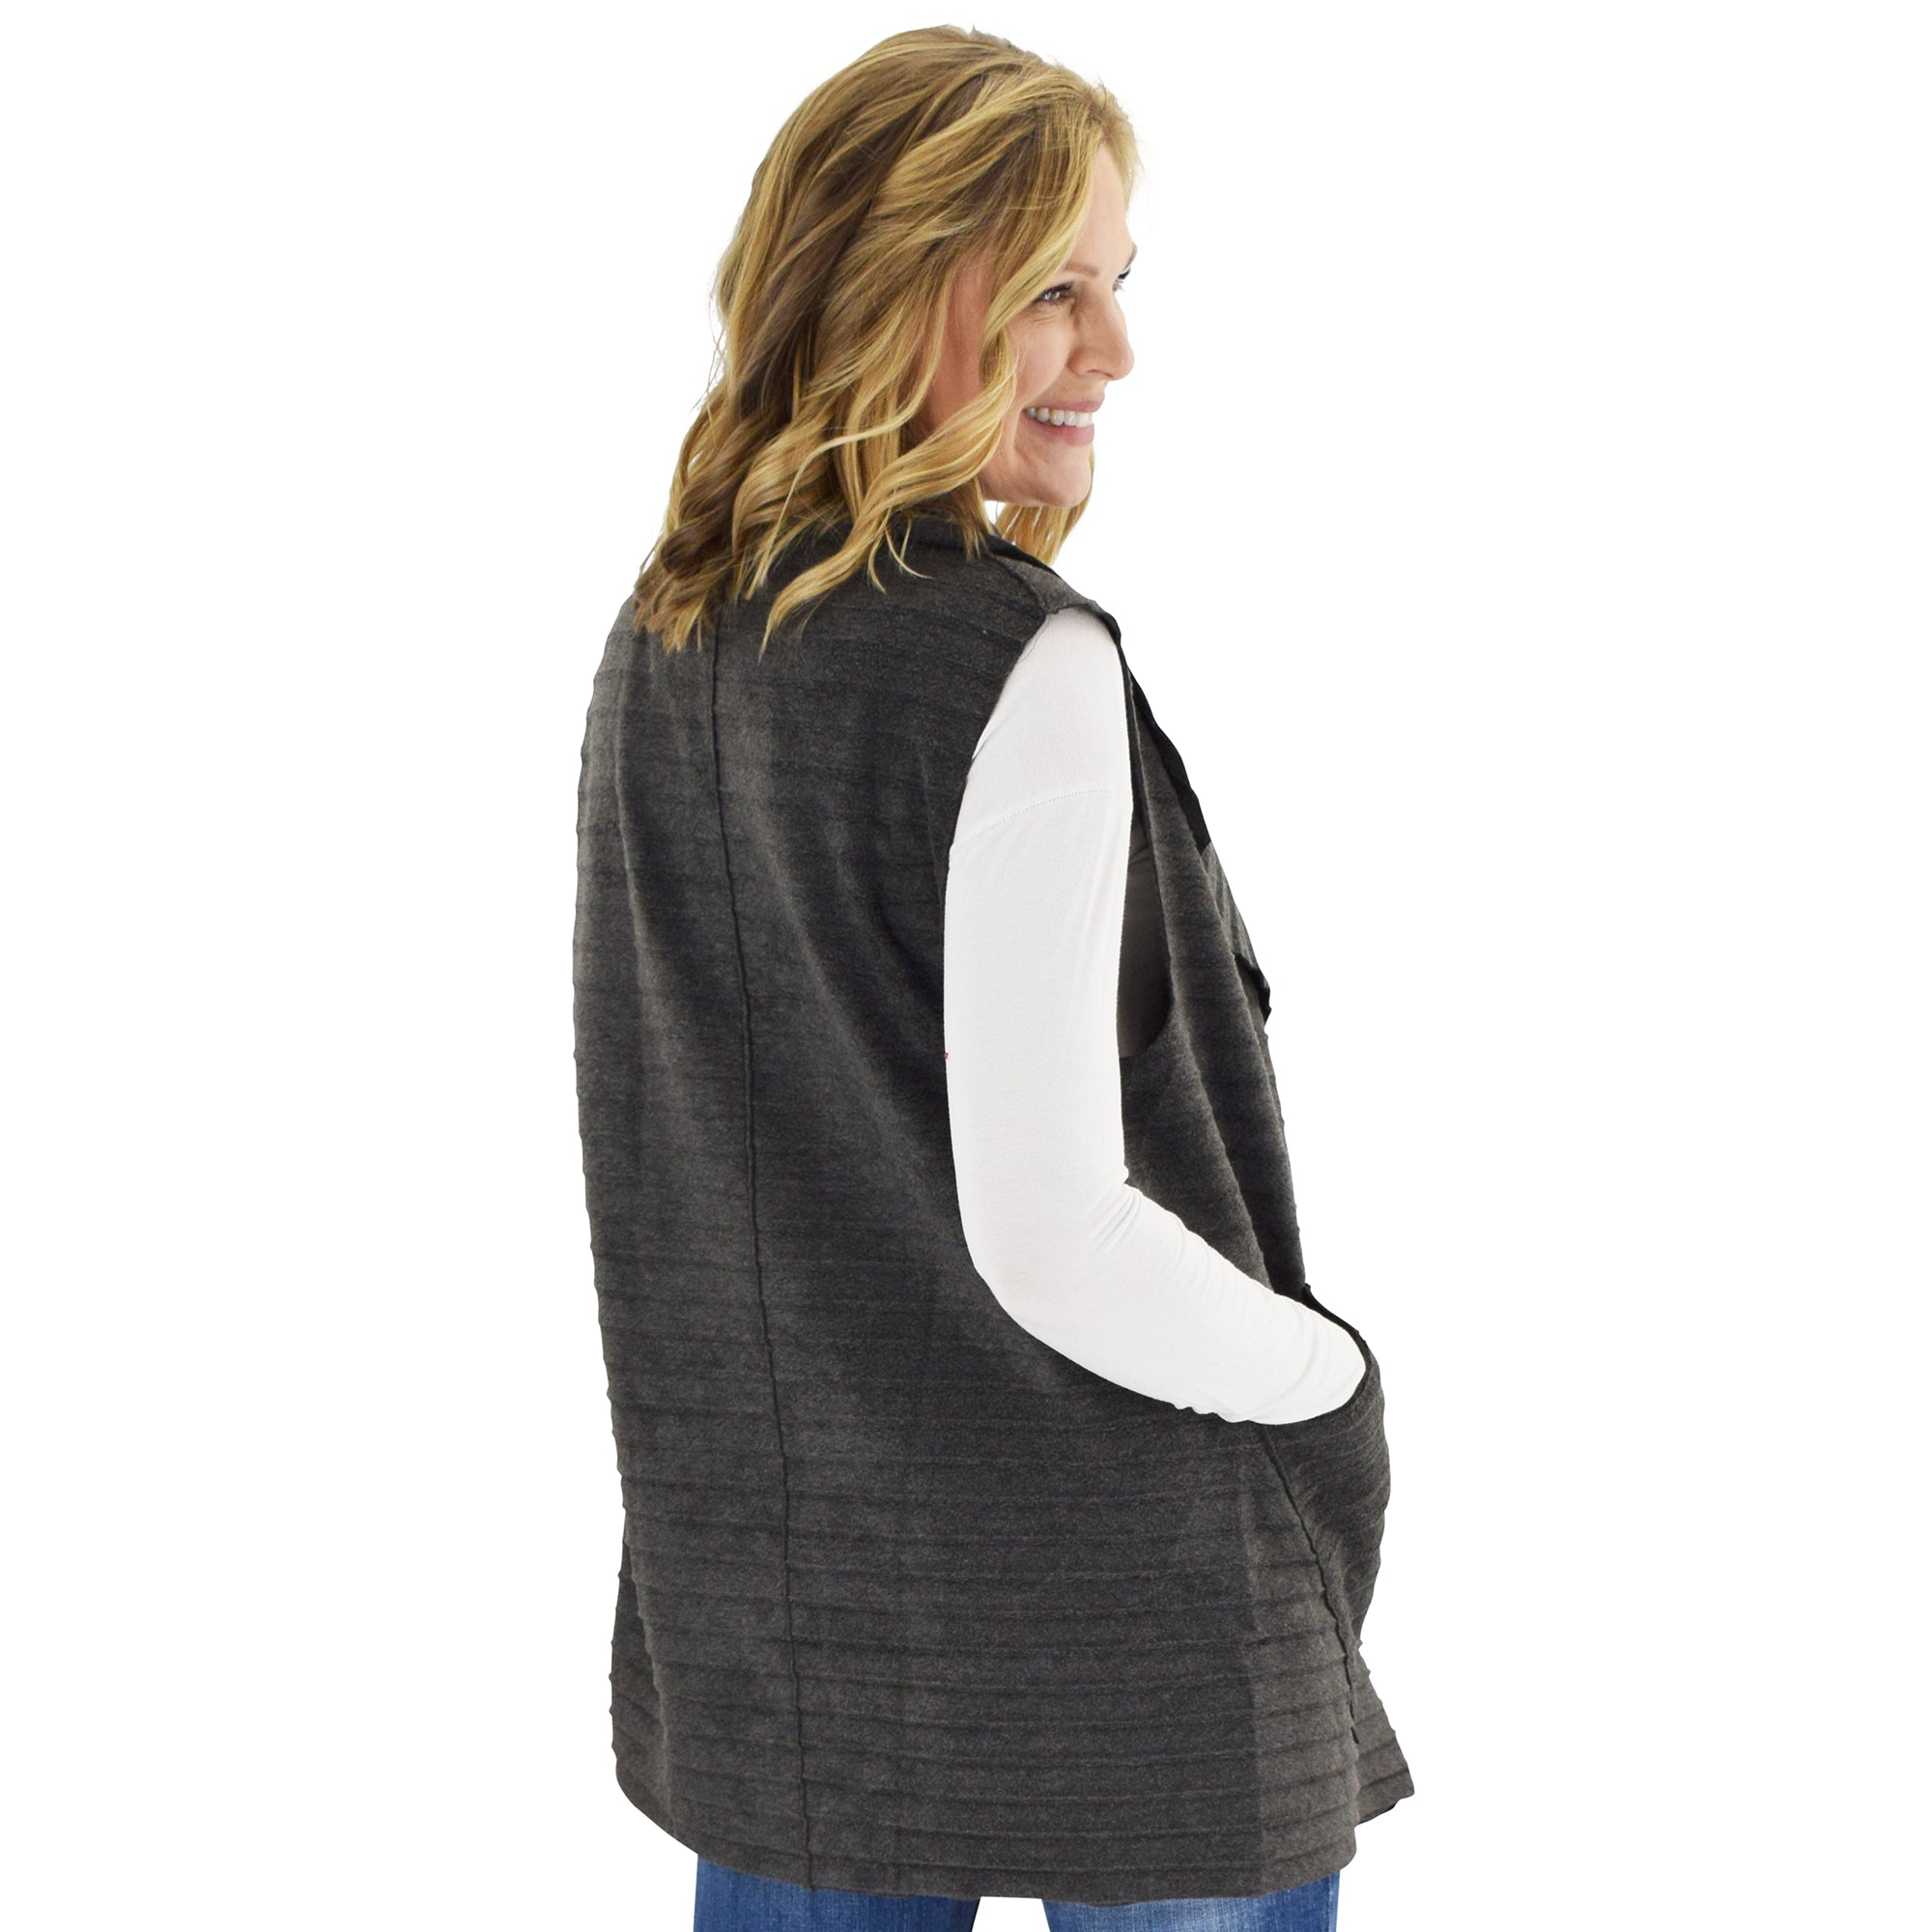 Le Moda Women's Sleeveless Pleated Open Front Fleece Vest Cardigan with Pockets at Linda Anderson. color_grey